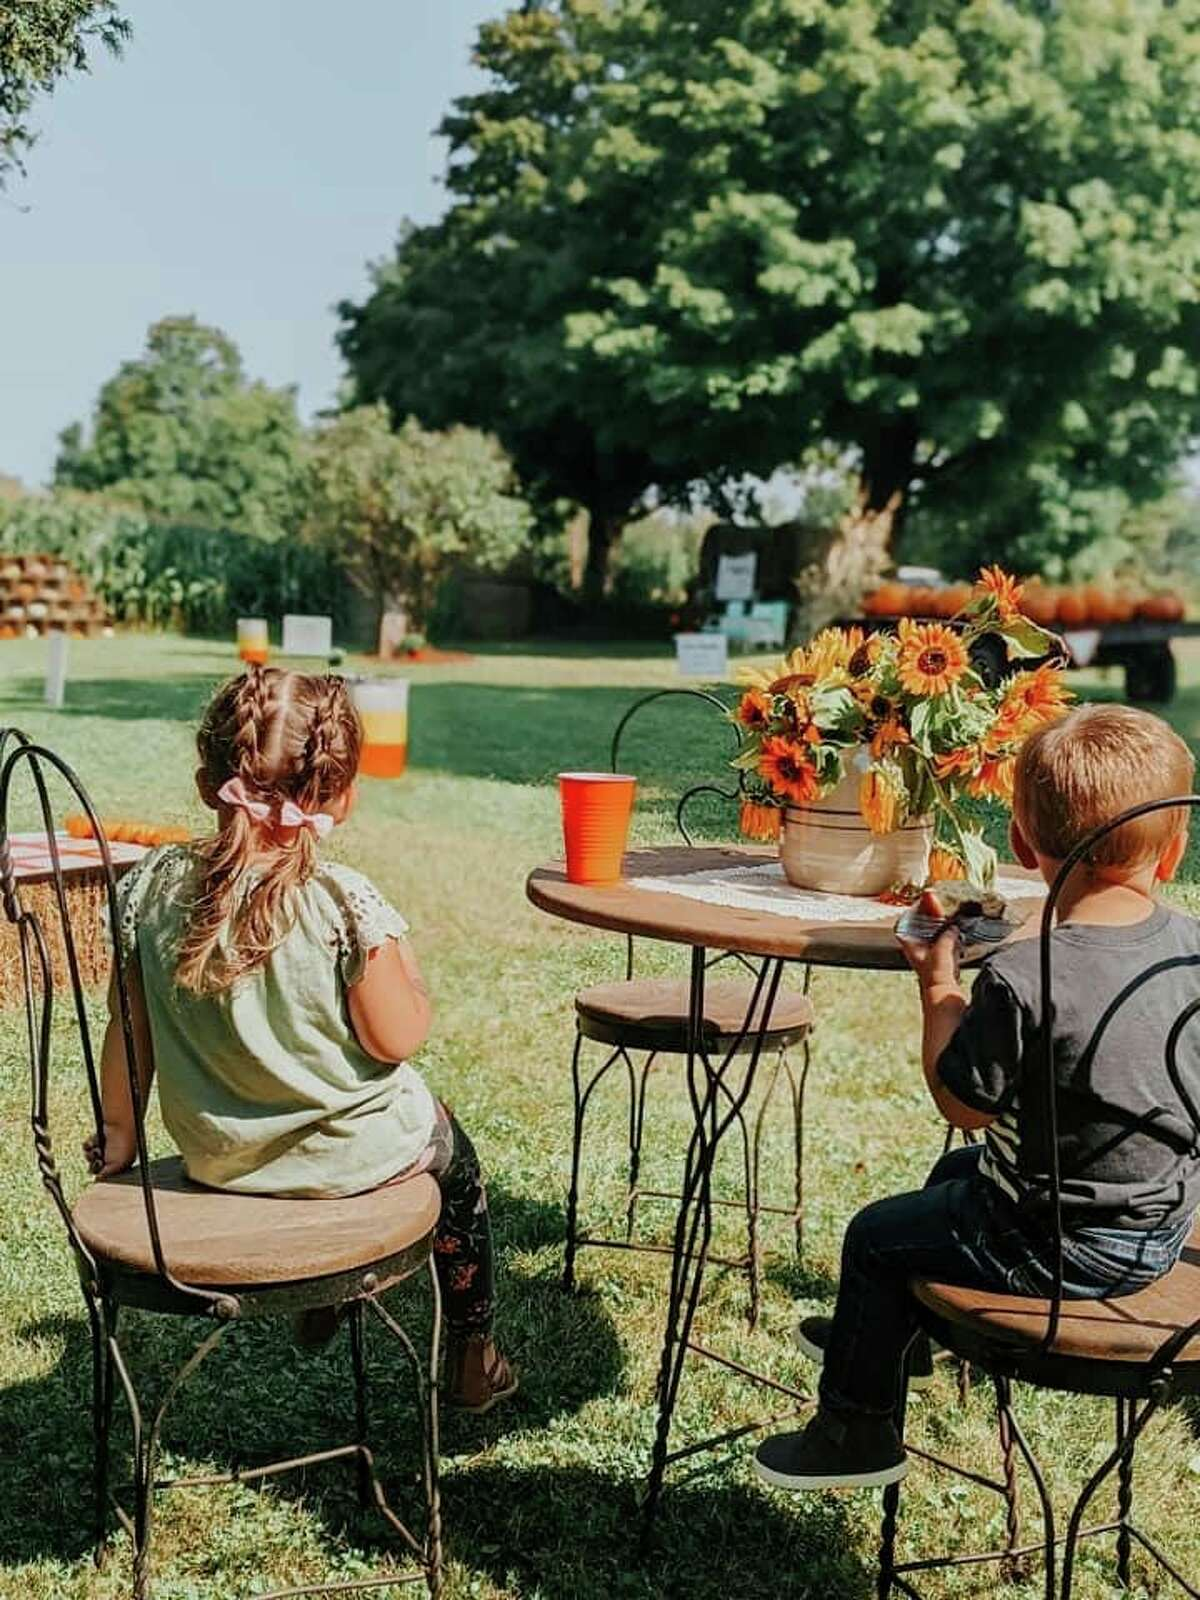 Apple cider, hot and iced coffee and donuts were served up all month long at the Oxford Farm. (Photo courtesy/Kendra Kissane)